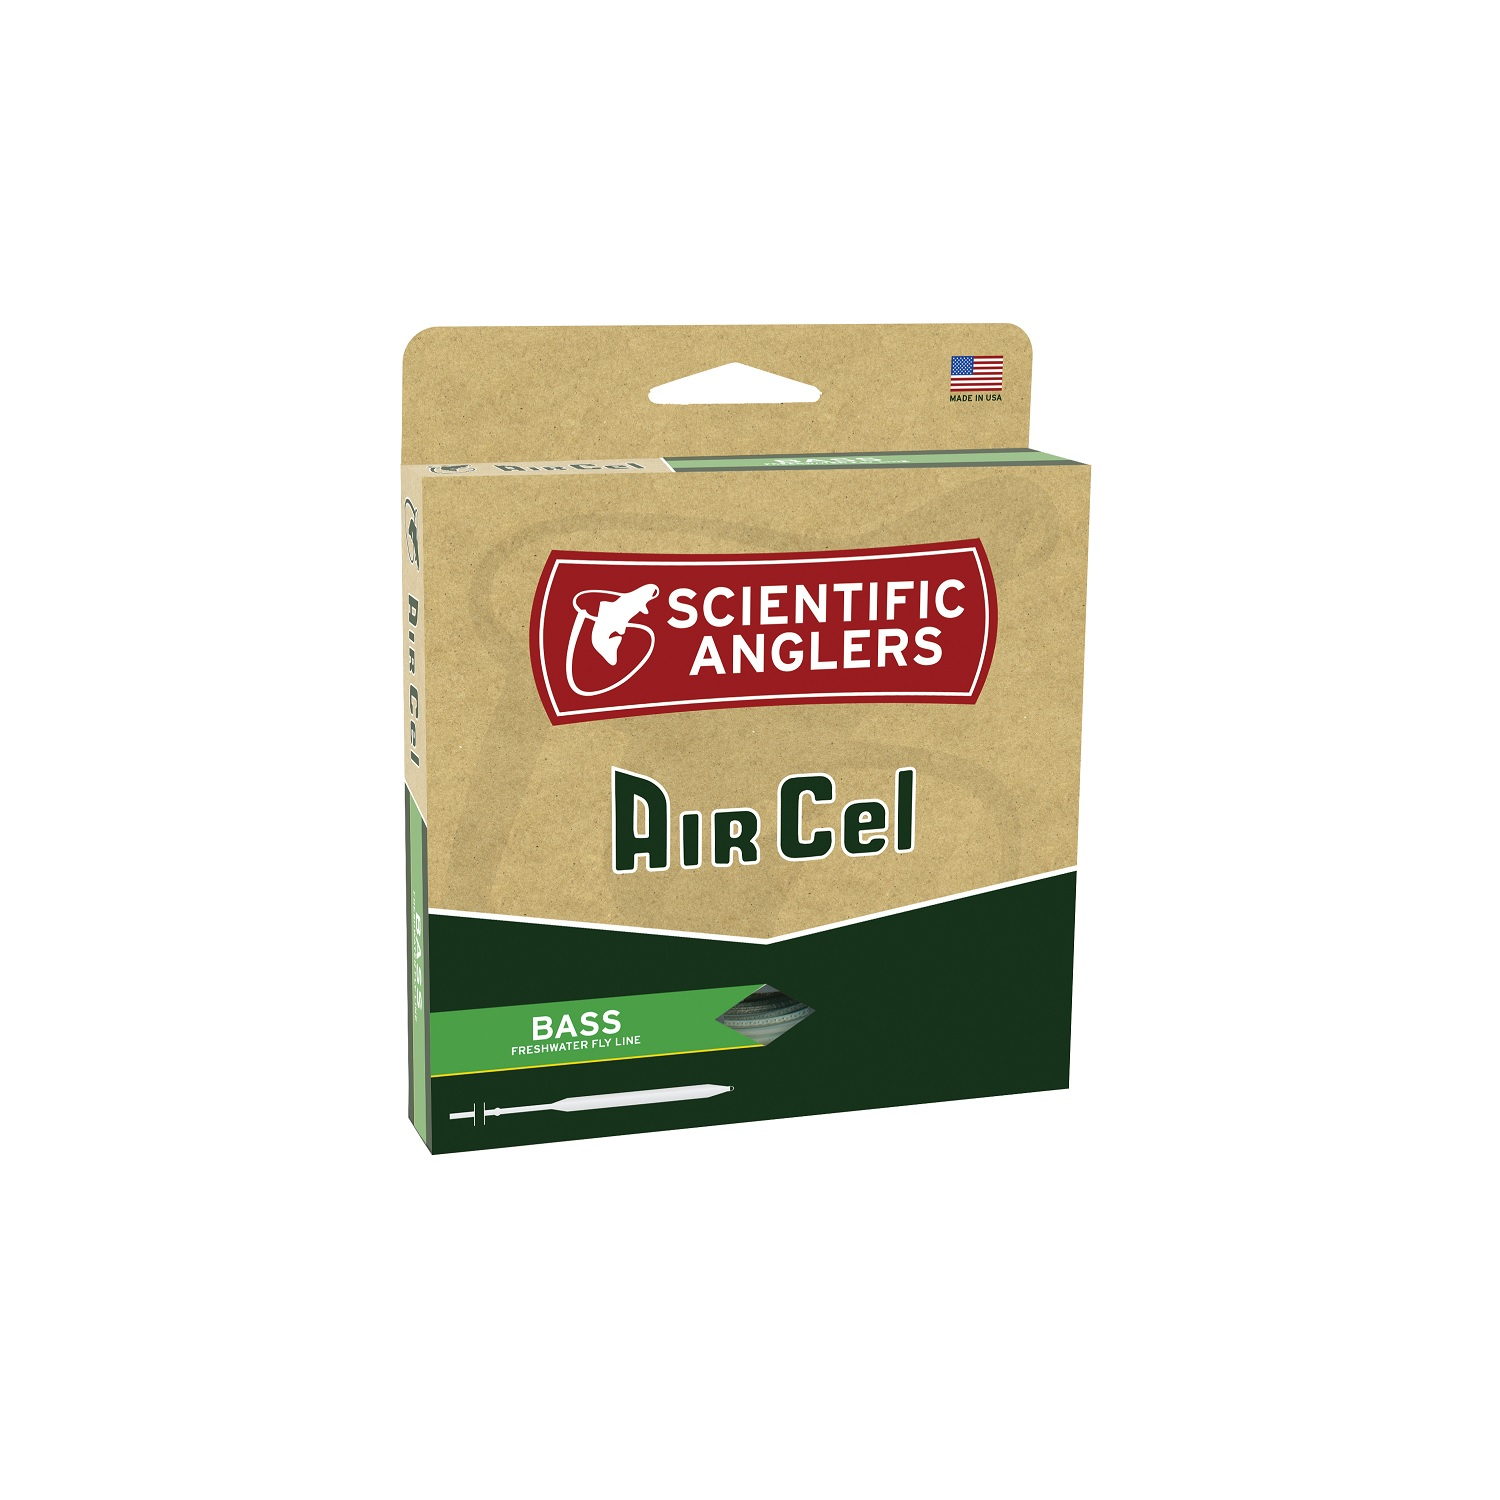 Scientific Anglers AirCel Floating Bass Fly Line-7 8-Yellow